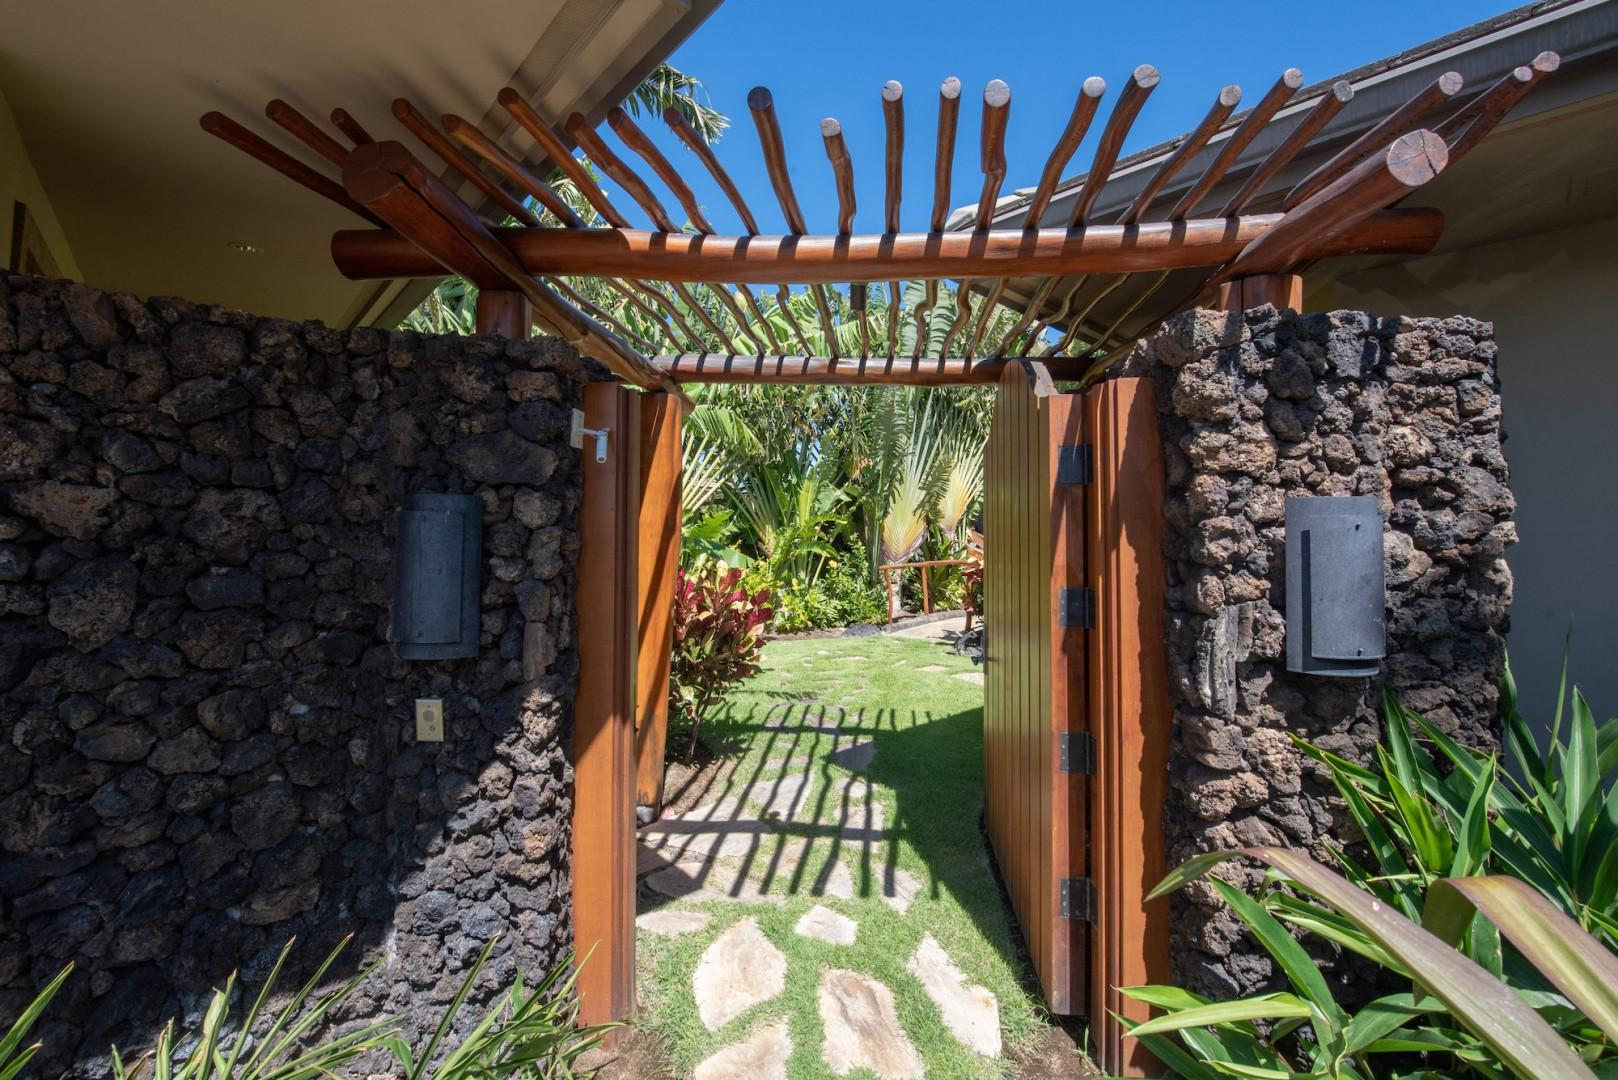 Guava Branches and Ohia Wood Comprise the Gated Entryway into your Private Courtyard